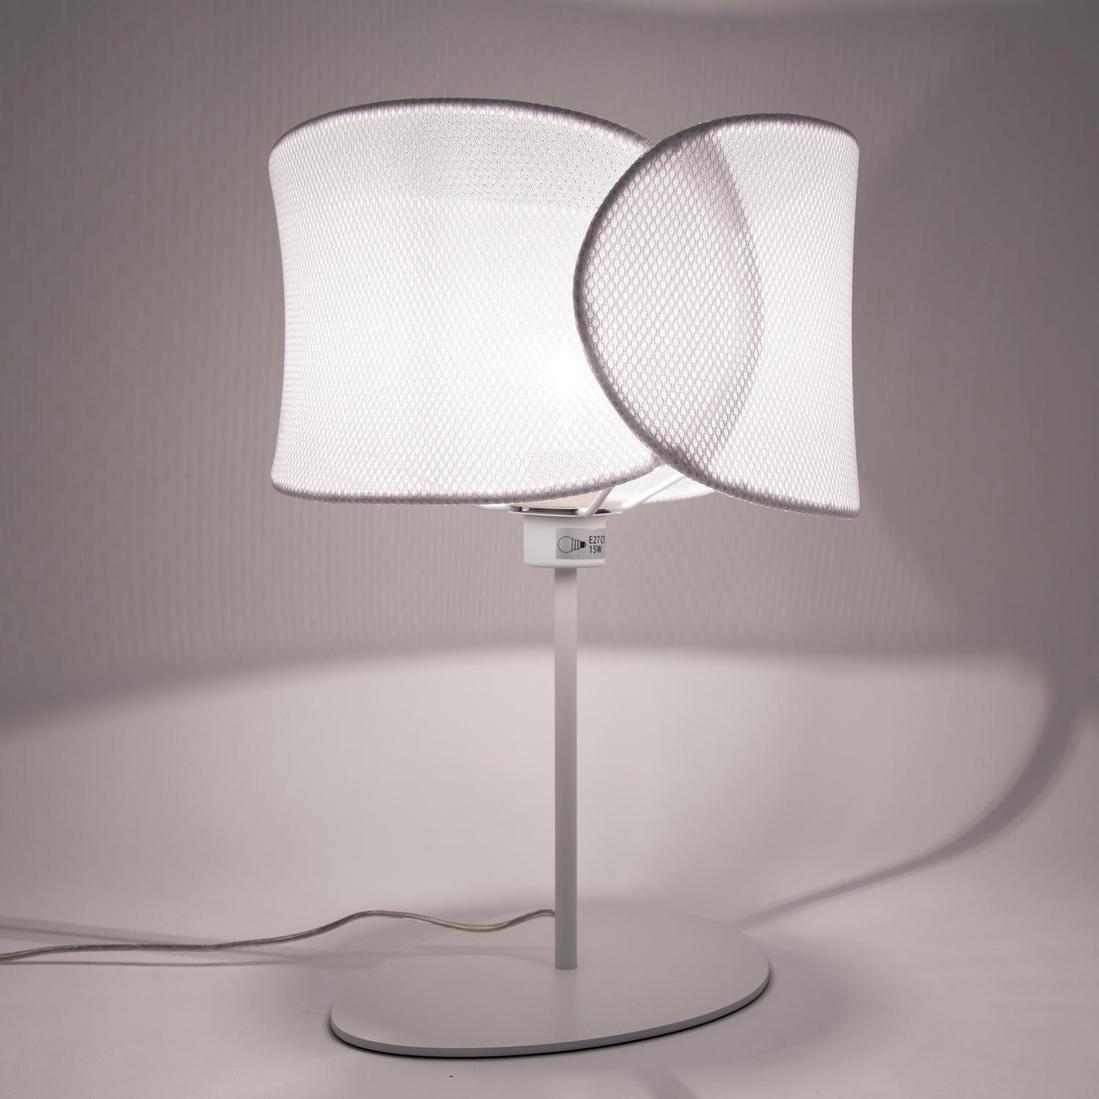 Lampe, design, métal blanc, MARBELLA LIGHTING Net